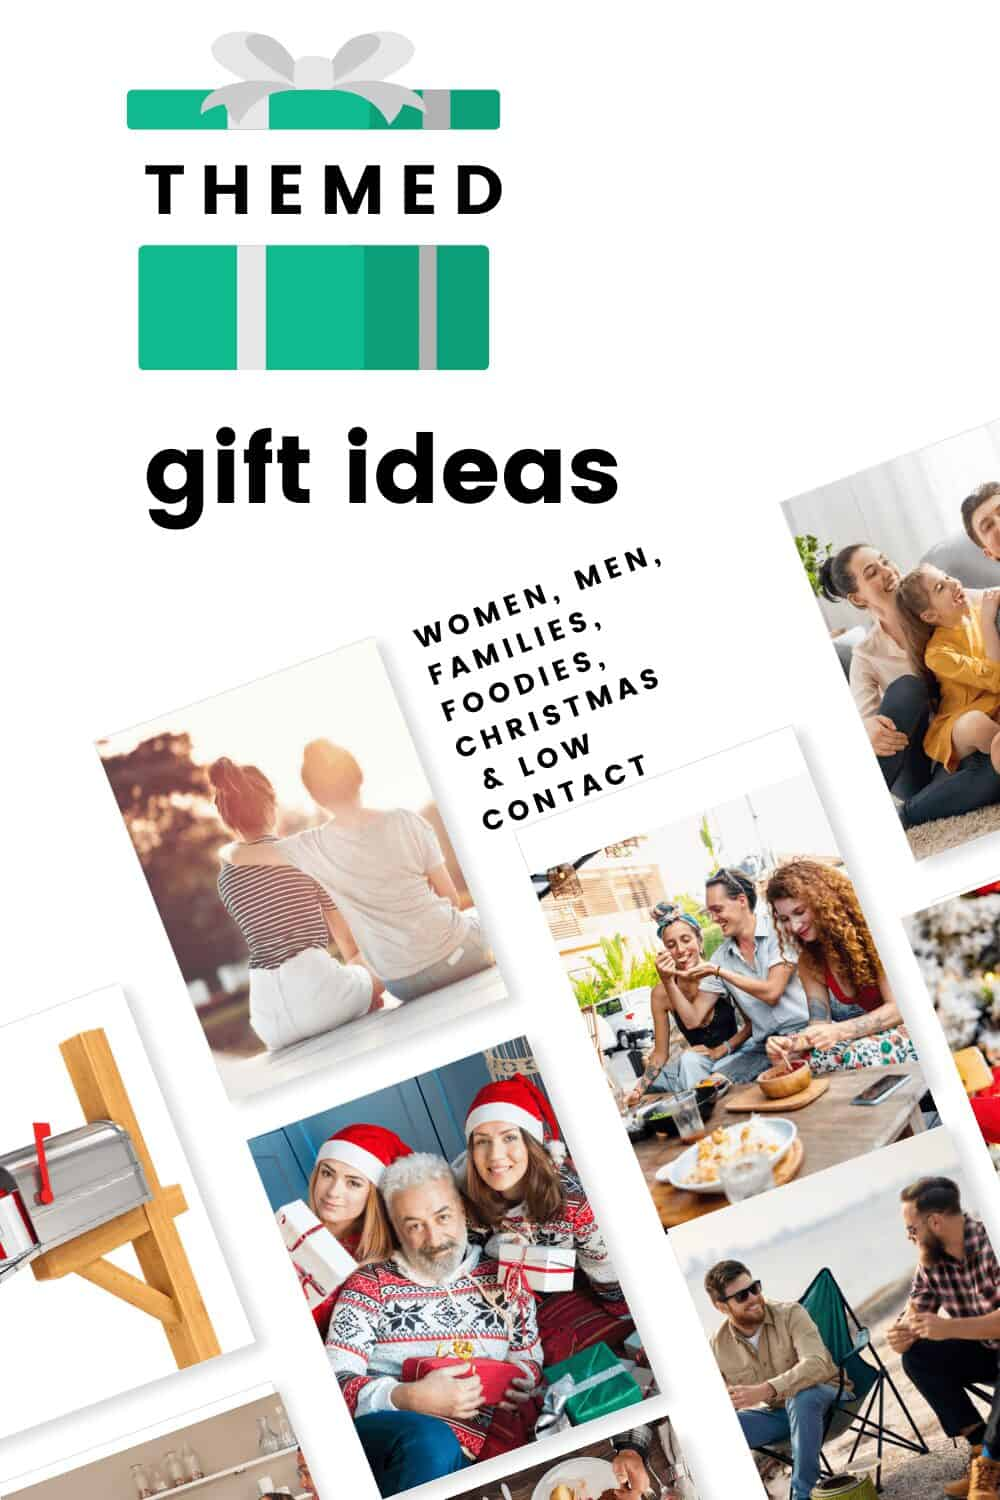 themed gift ideas present and people getting gifts